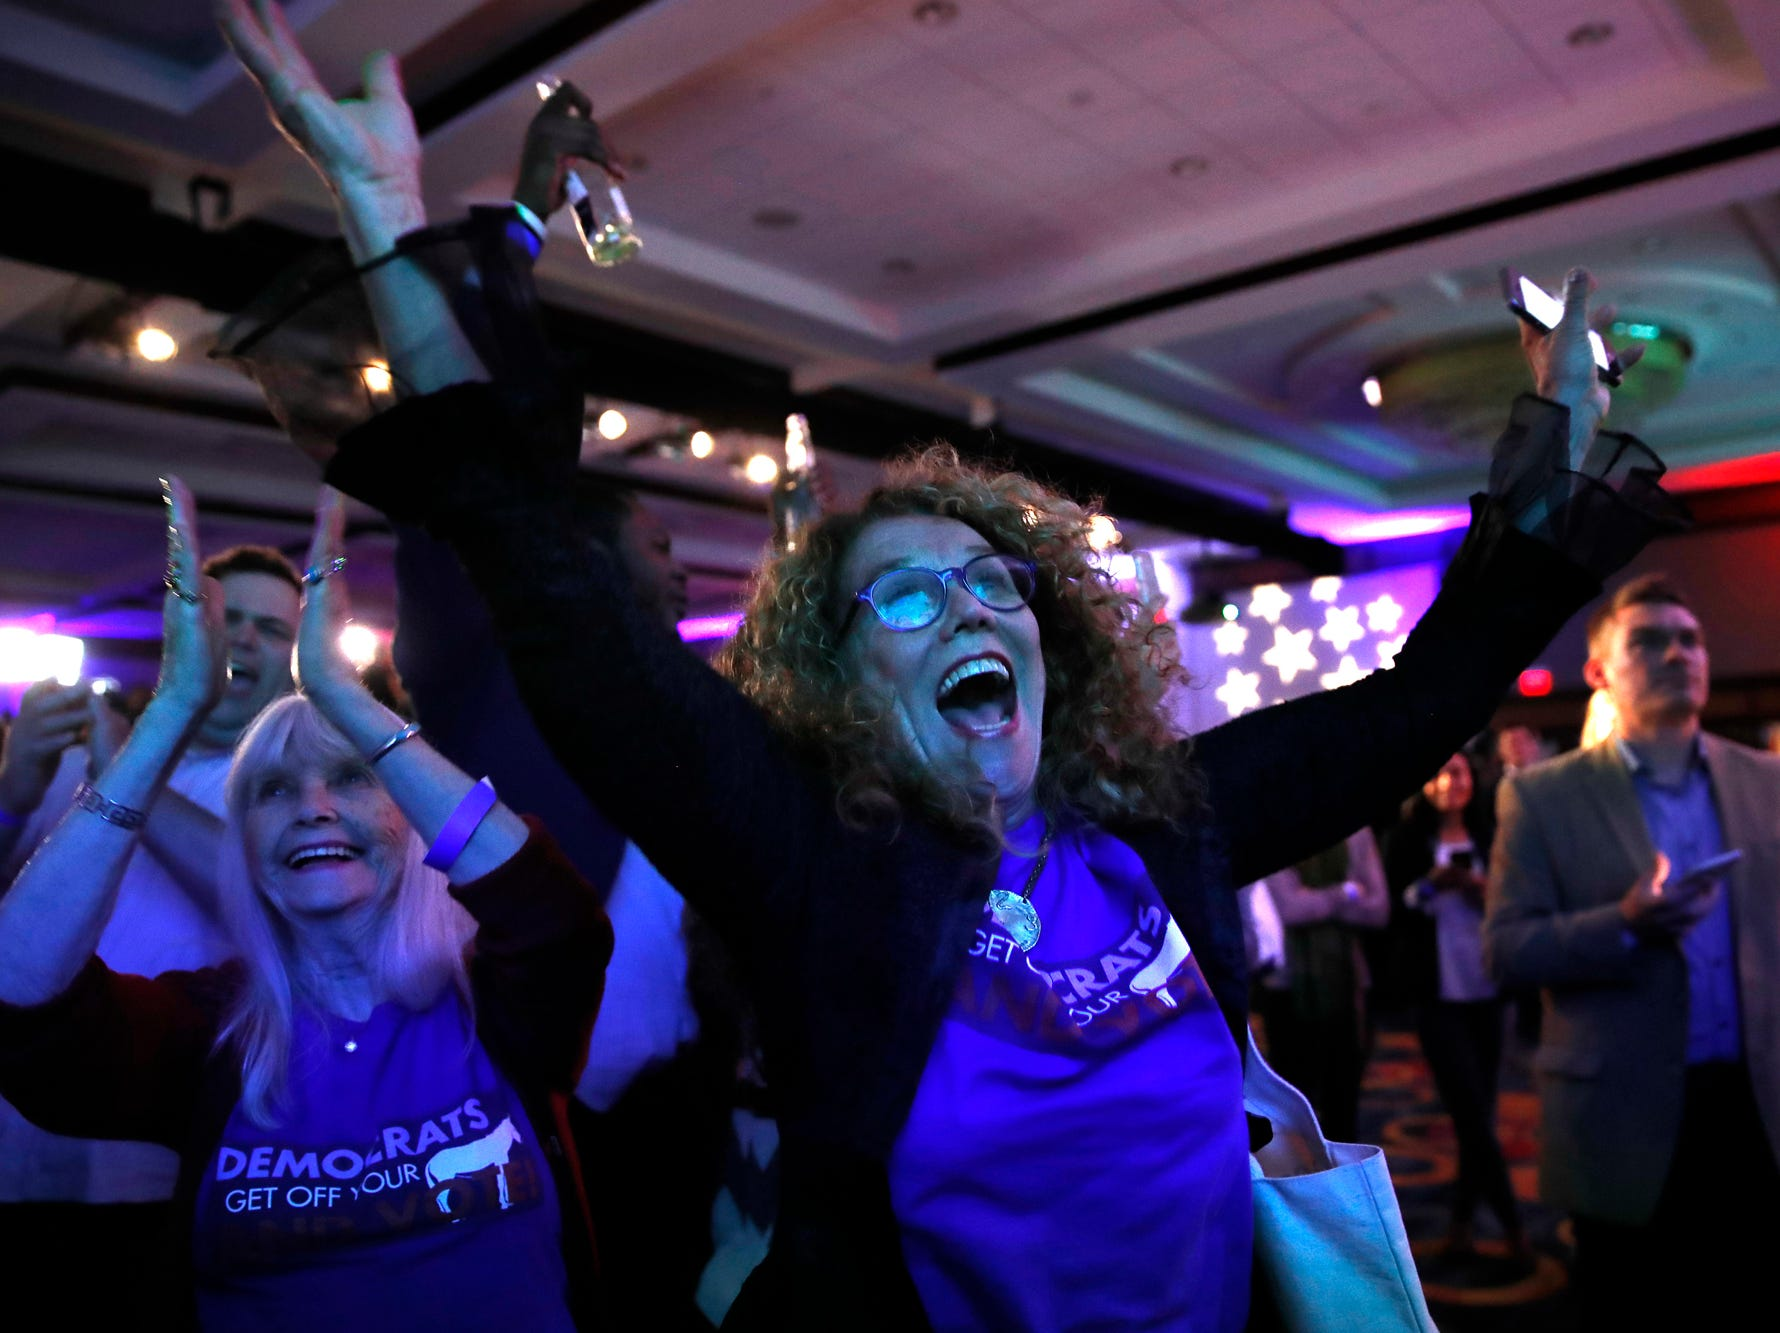 Sydney Crawford, 84, left, of New York City, and JoAnn Loulan, 70, of Portola Valley, Calif., watch election returns during a Democratic party election night event at the Hyatt Regency Hotel, on Tuesday, Nov. 6, 2018, in Washington. (AP Photo/Jacquelyn Martin)